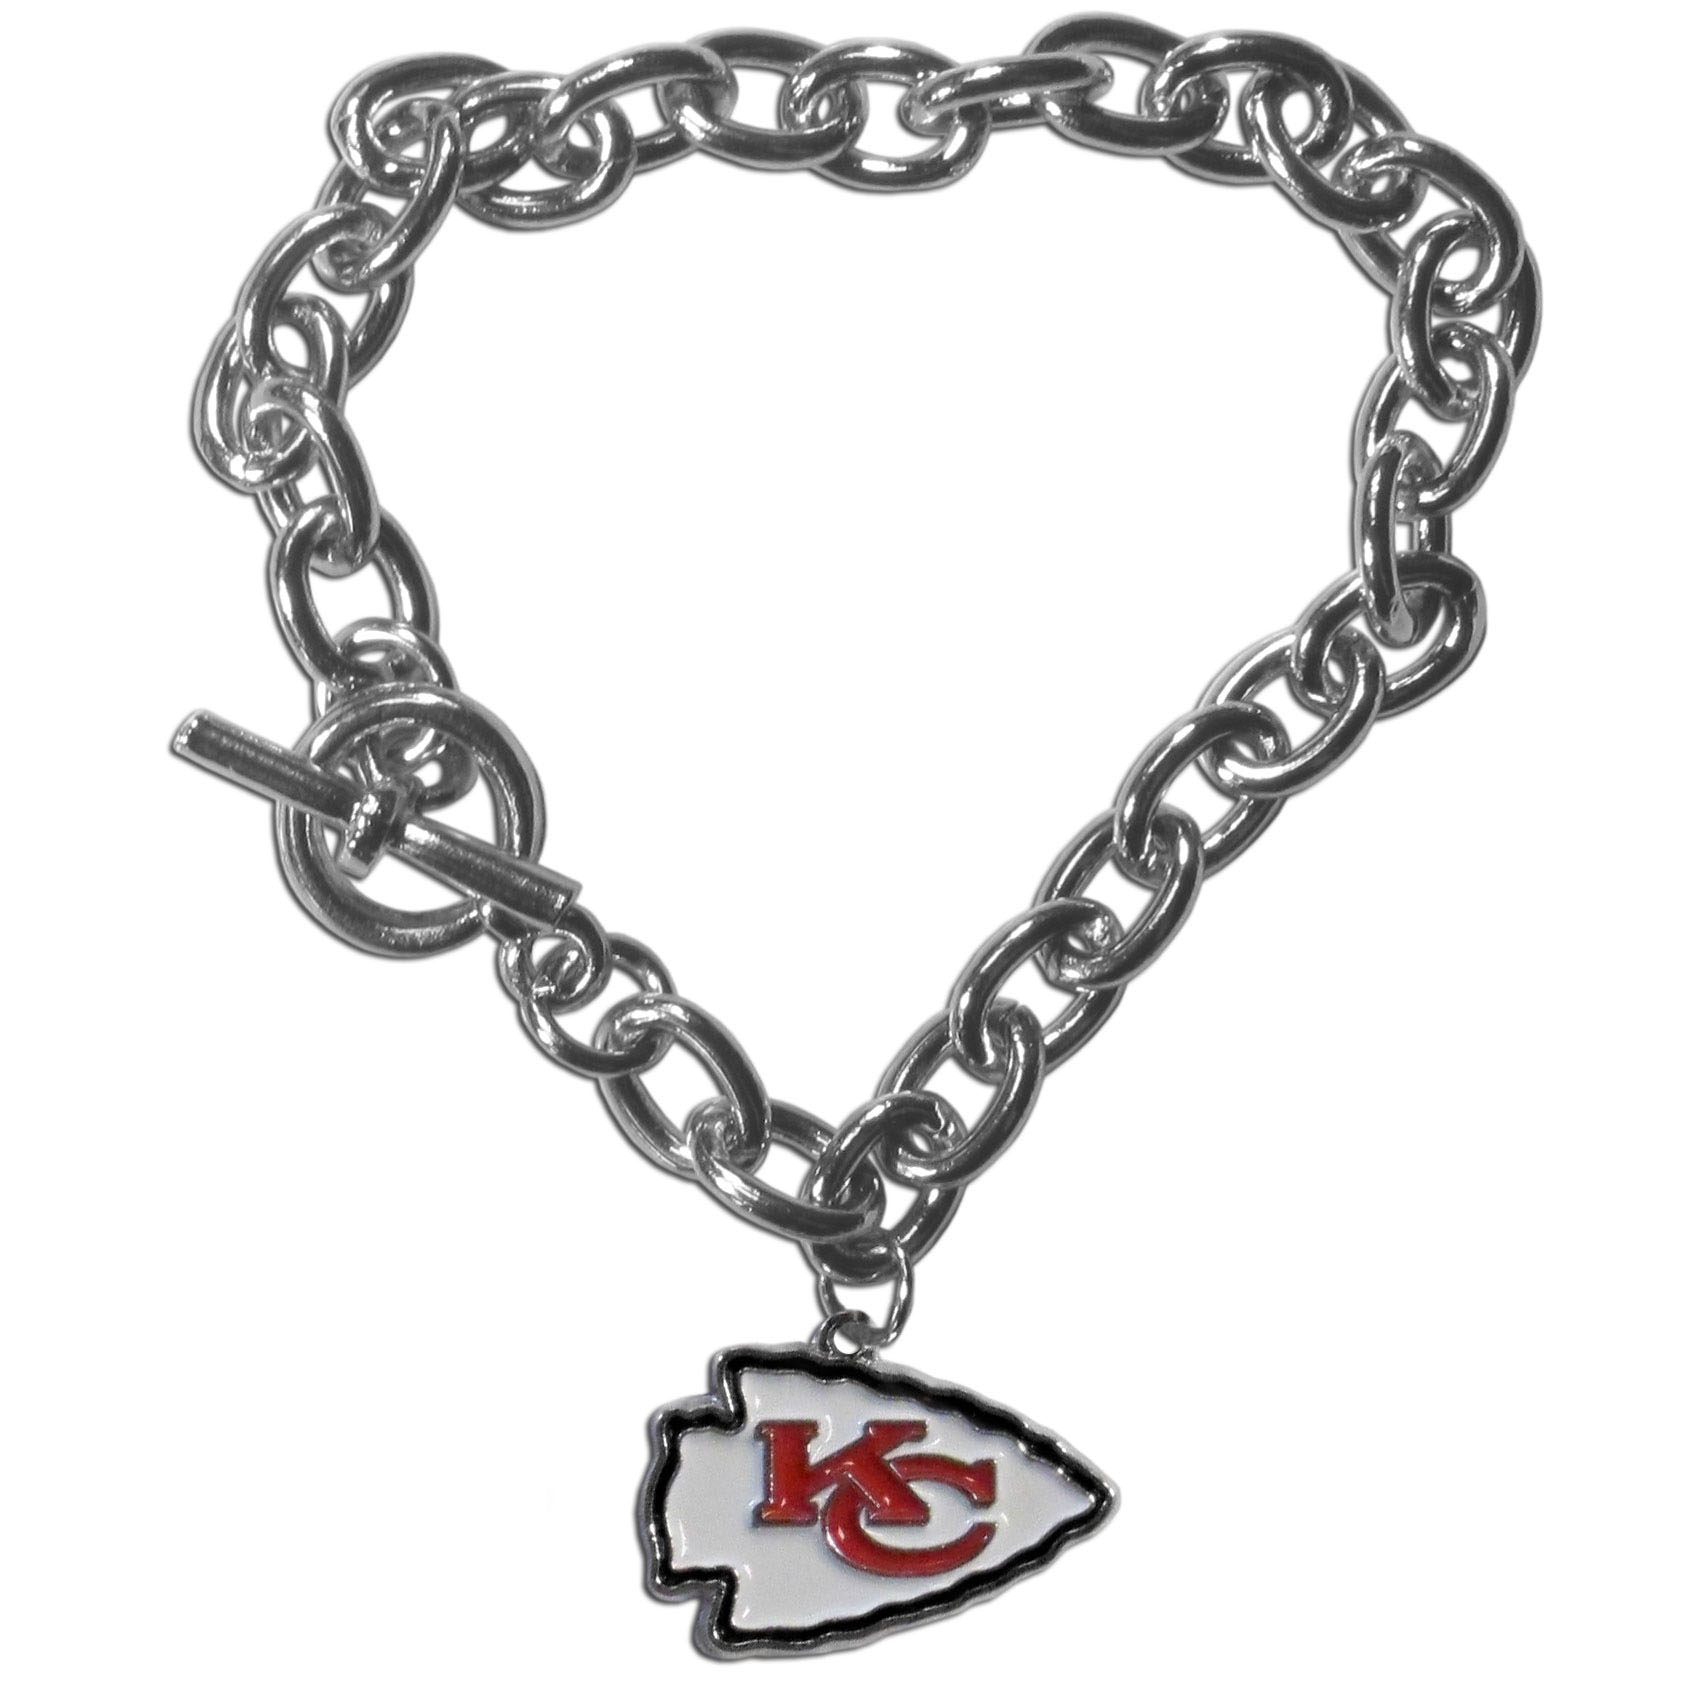 Kansas City Chiefs Charm Chain Bracelet - Our classic single charm bracelet is a great way to show off your team pride! The 7.5 inch large link chain features a high polish Kansas City Chiefs charm and features a toggle clasp which makes it super easy to take on and off.